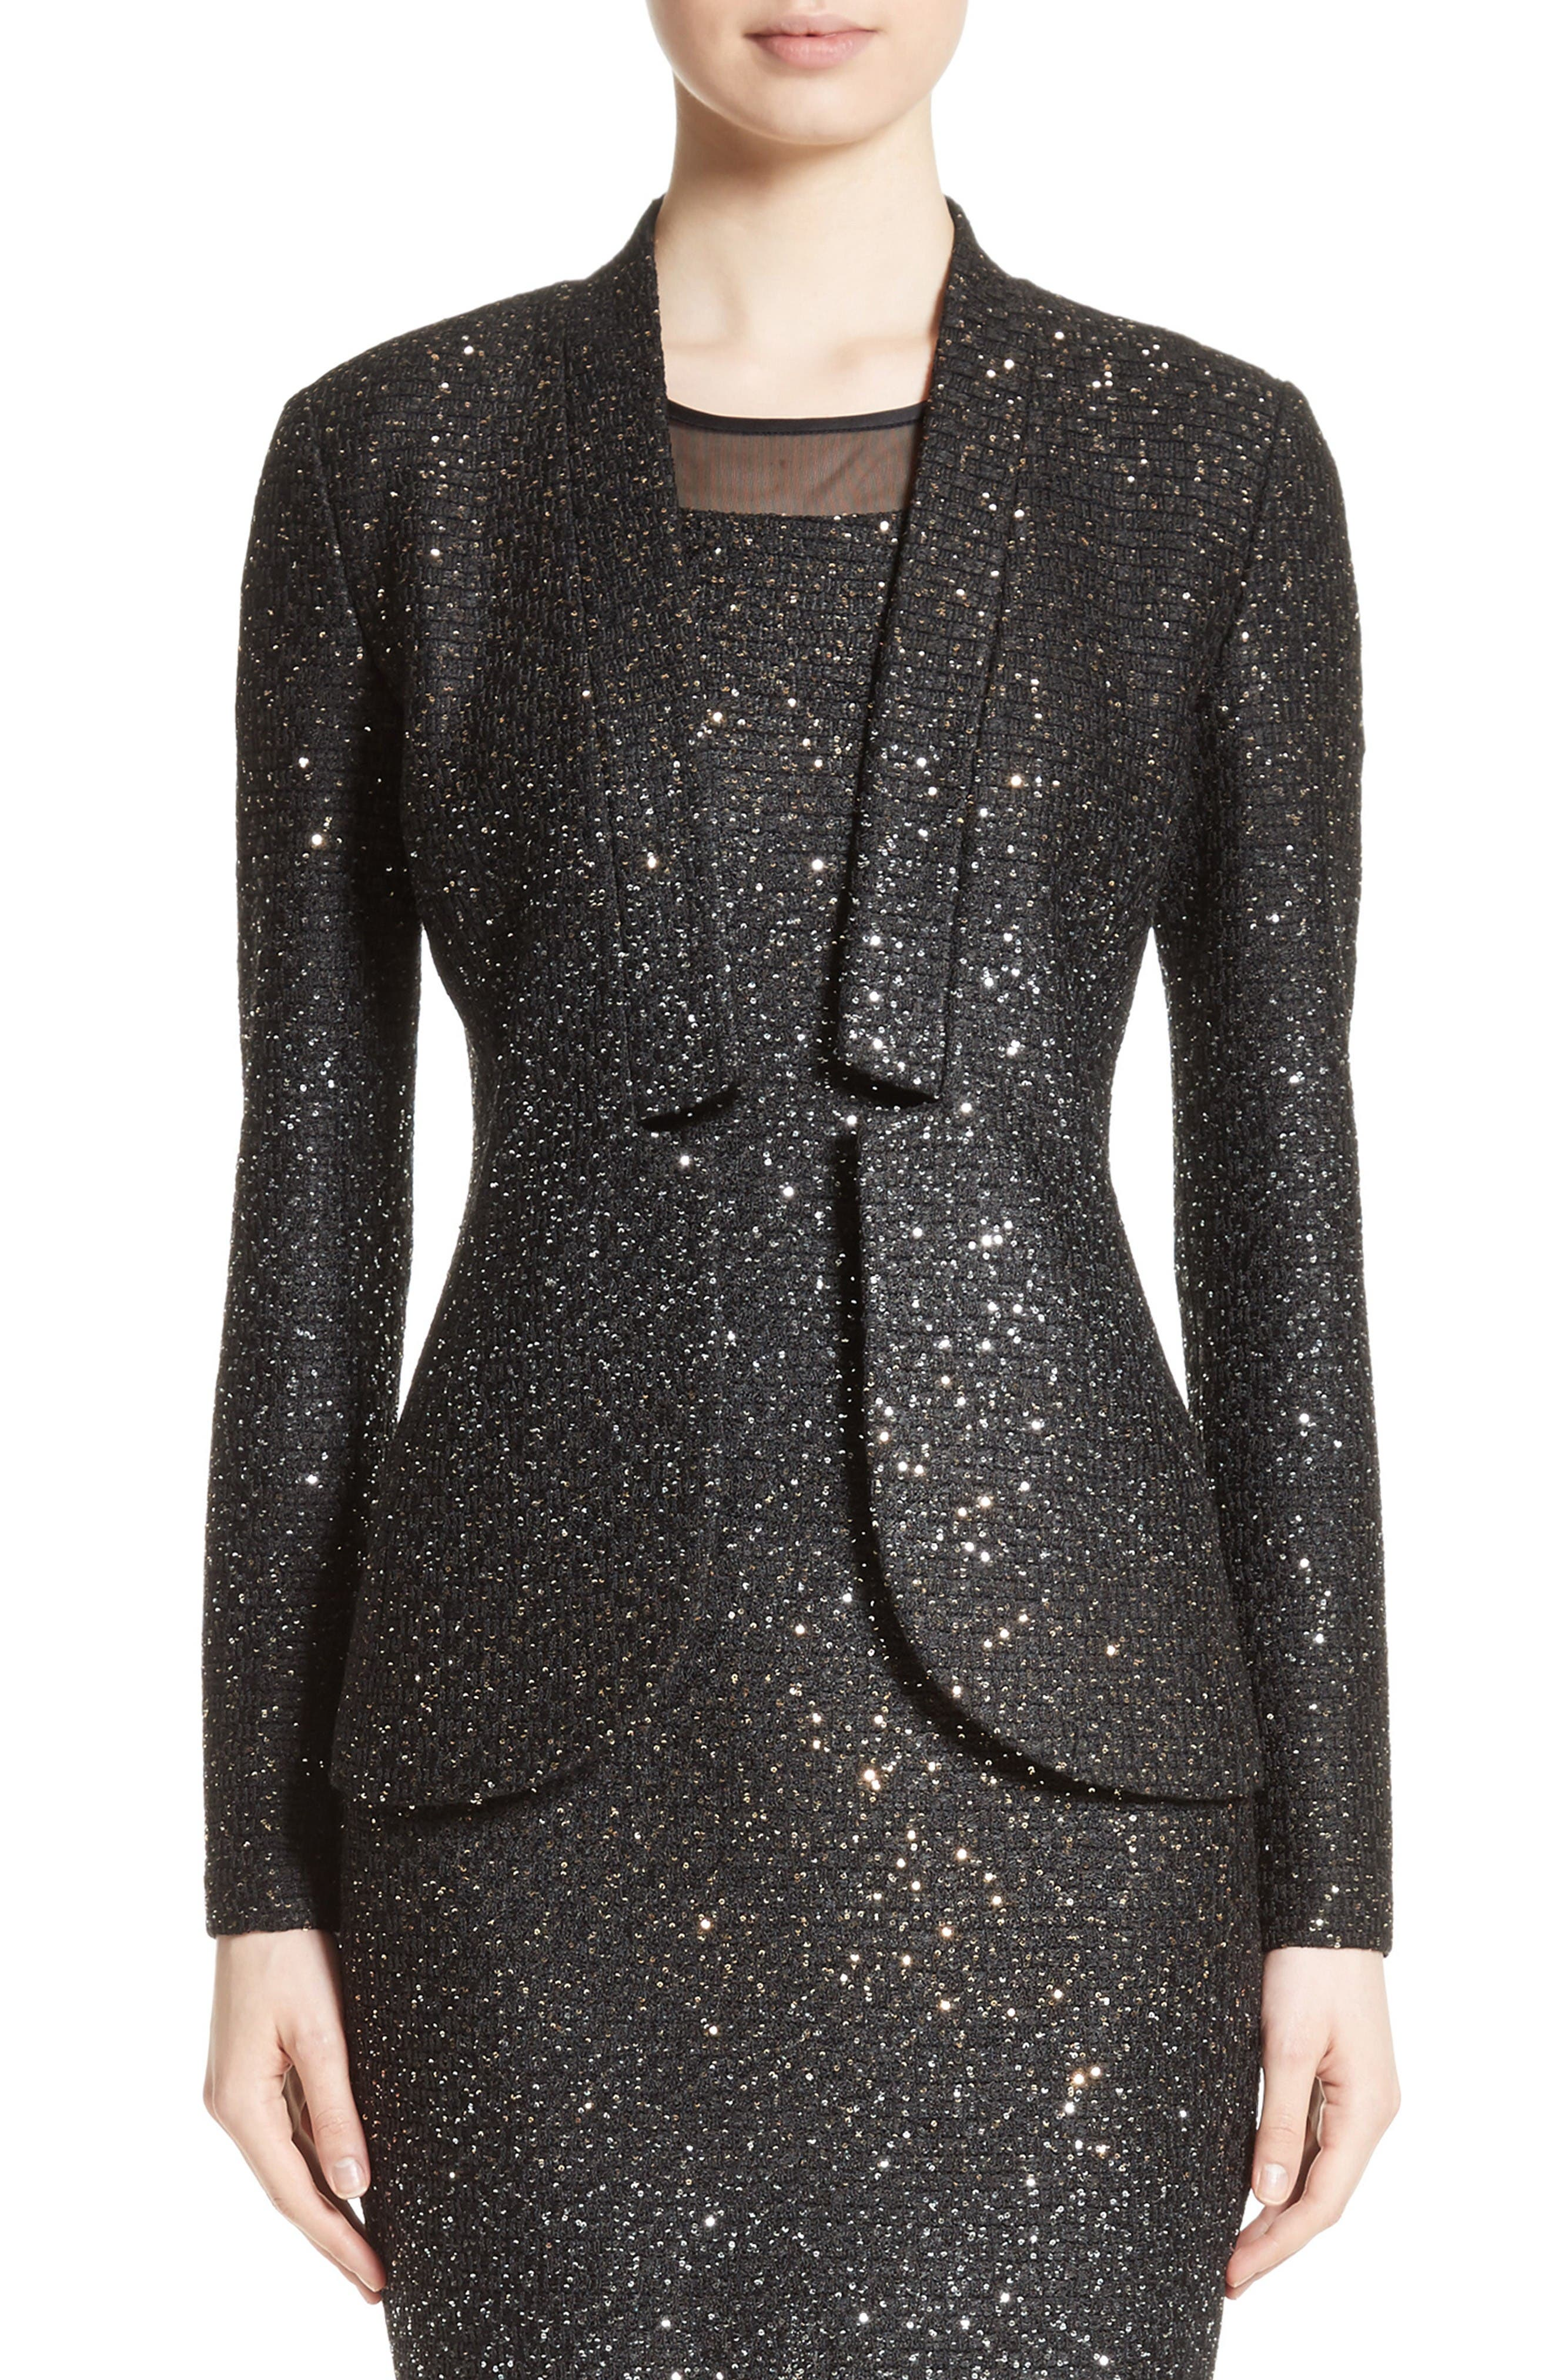 Alternate Image 1 Selected - St. John Collection Pranay Sequin Knit Jacket